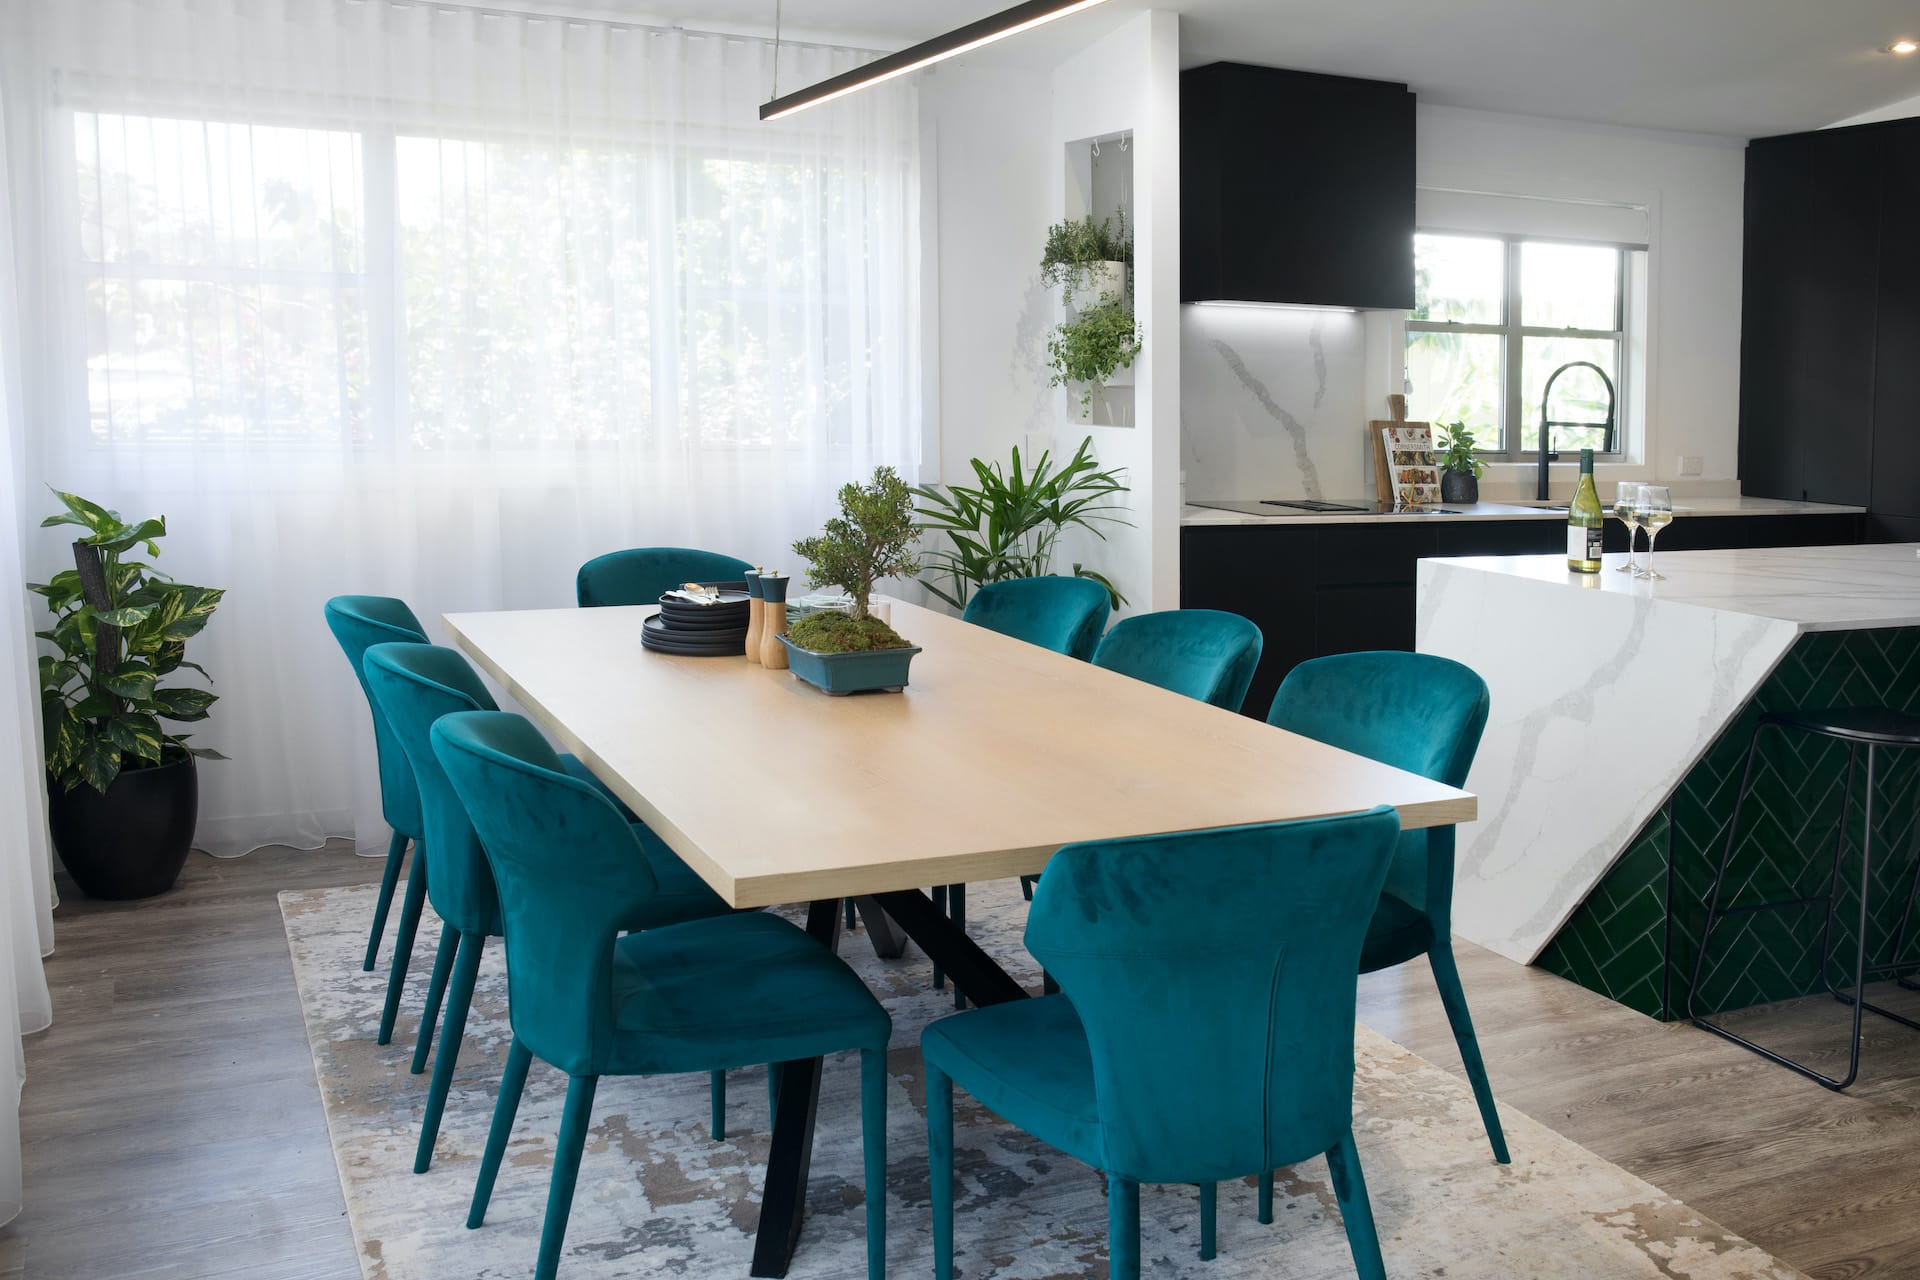 house rules 2020 tamara and rhys dining room with teal dining chairs